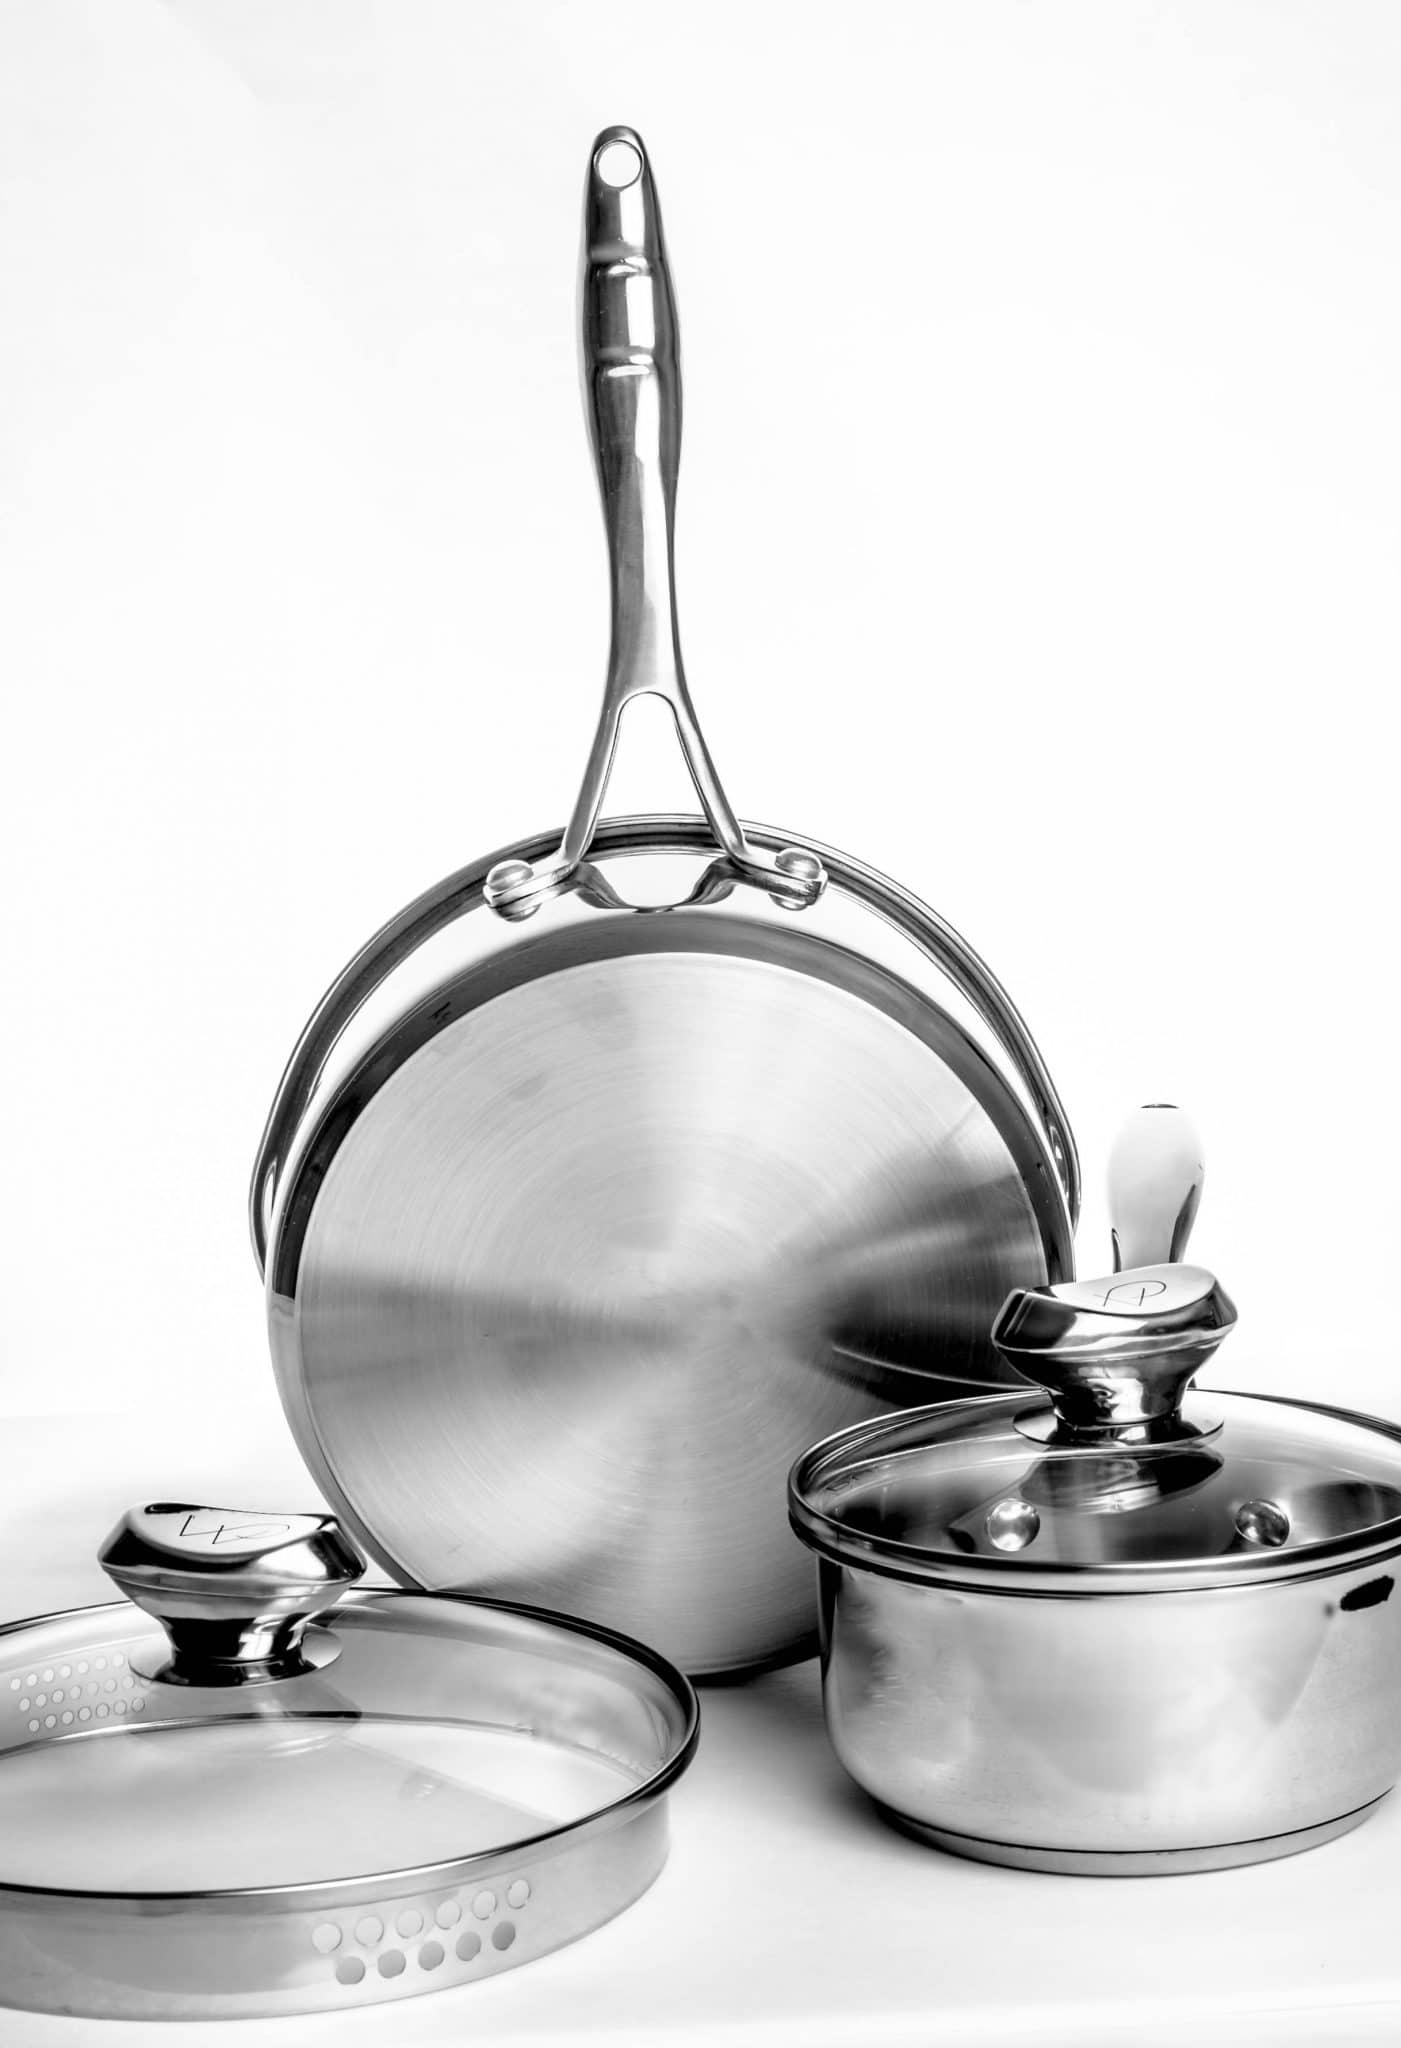 stainless steel kitchenware, stainless steel kitchenware products